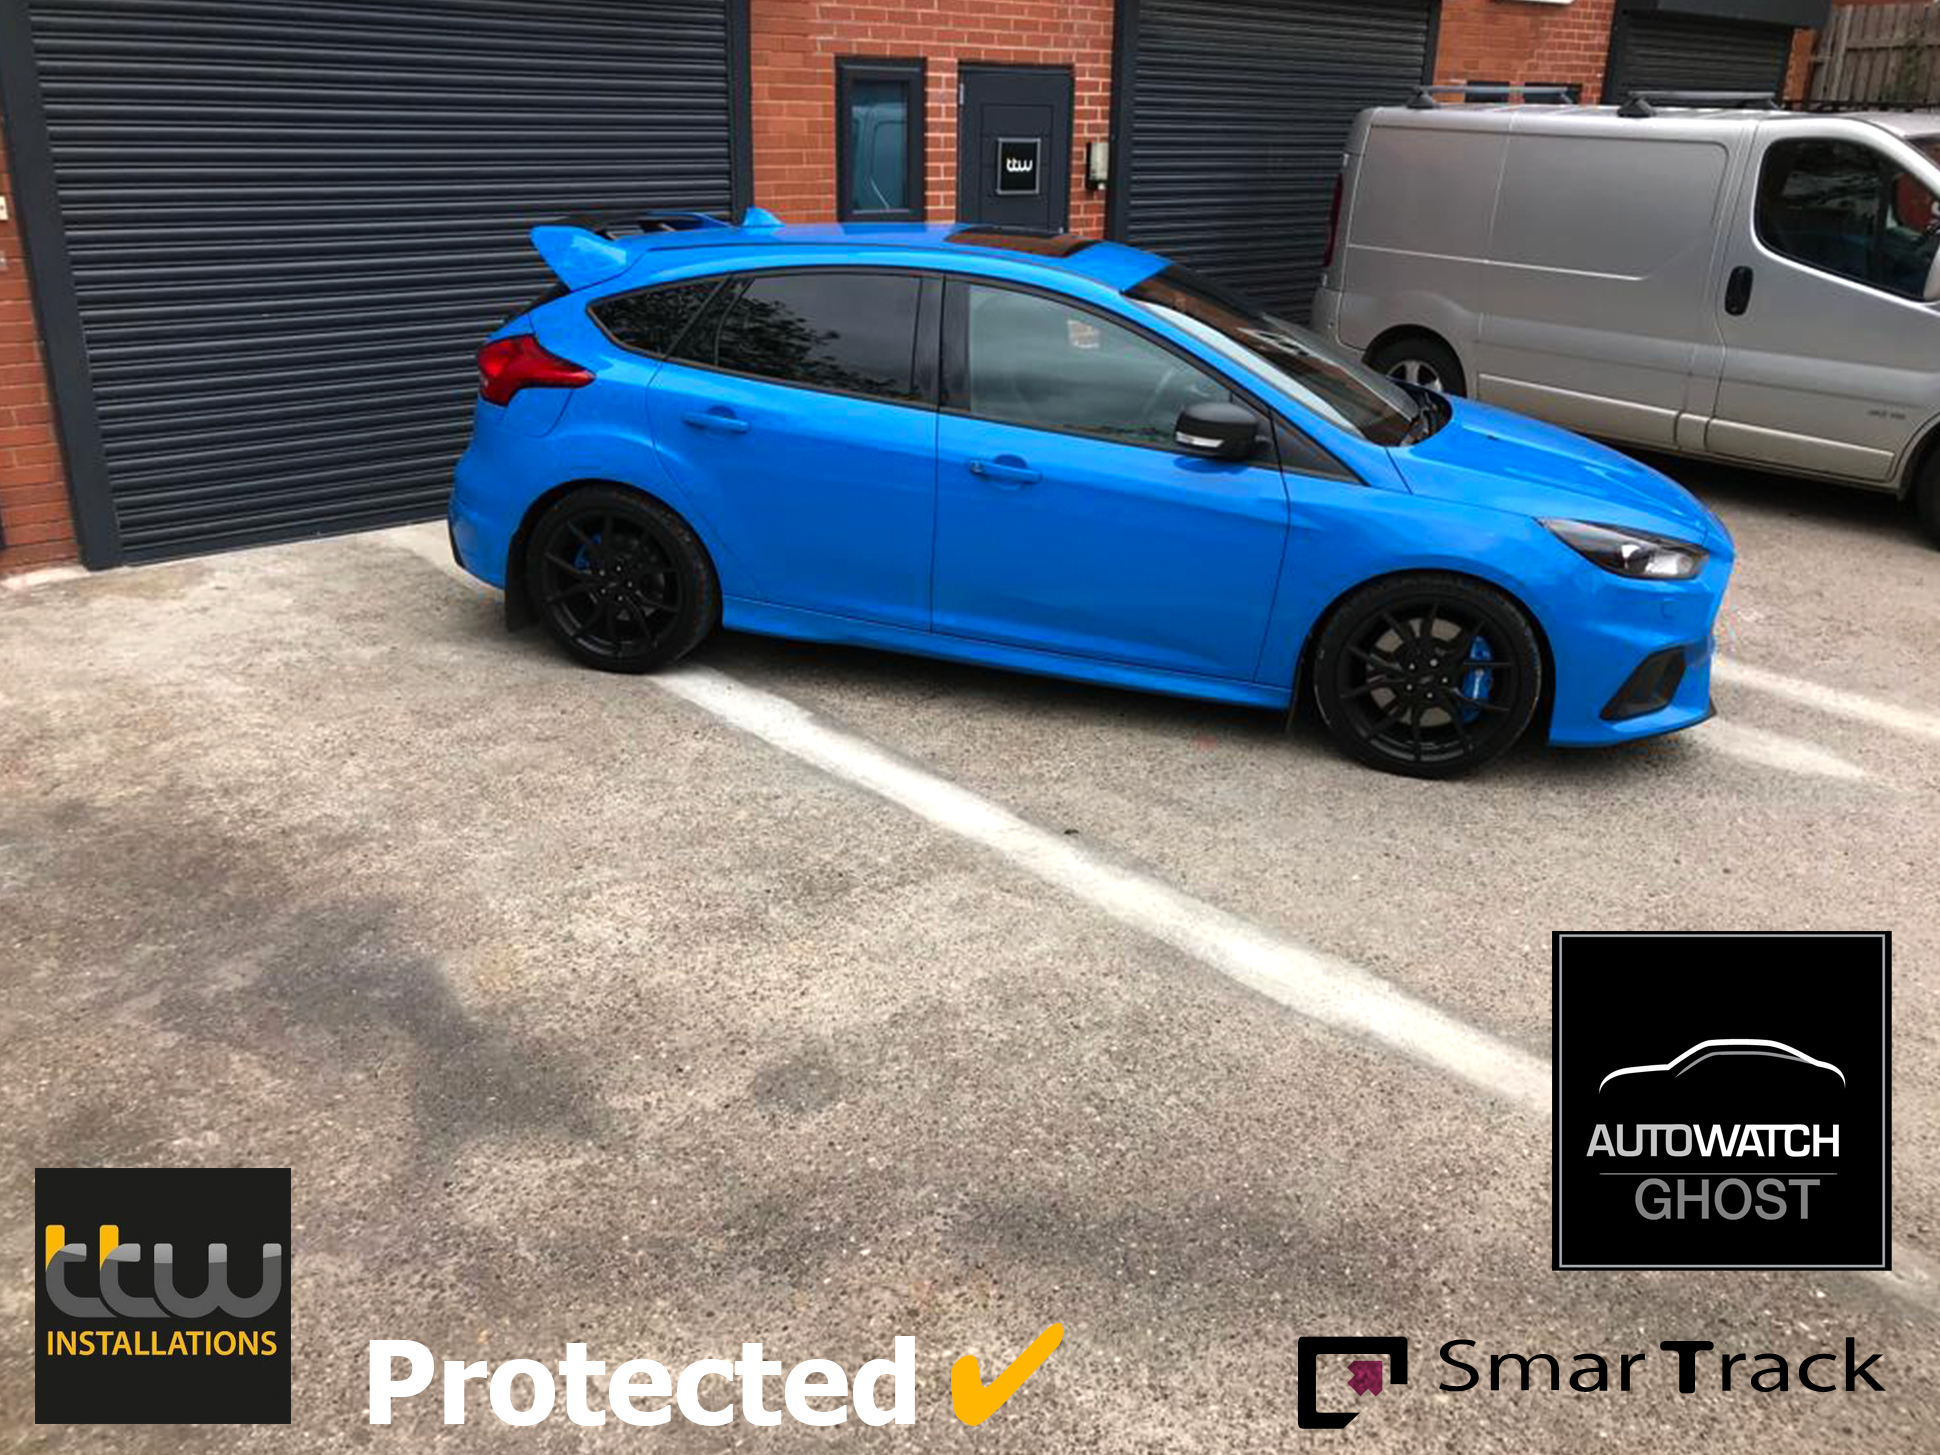 Ford Focus RS Autowatch Ghost 2 protected By TTW Installations